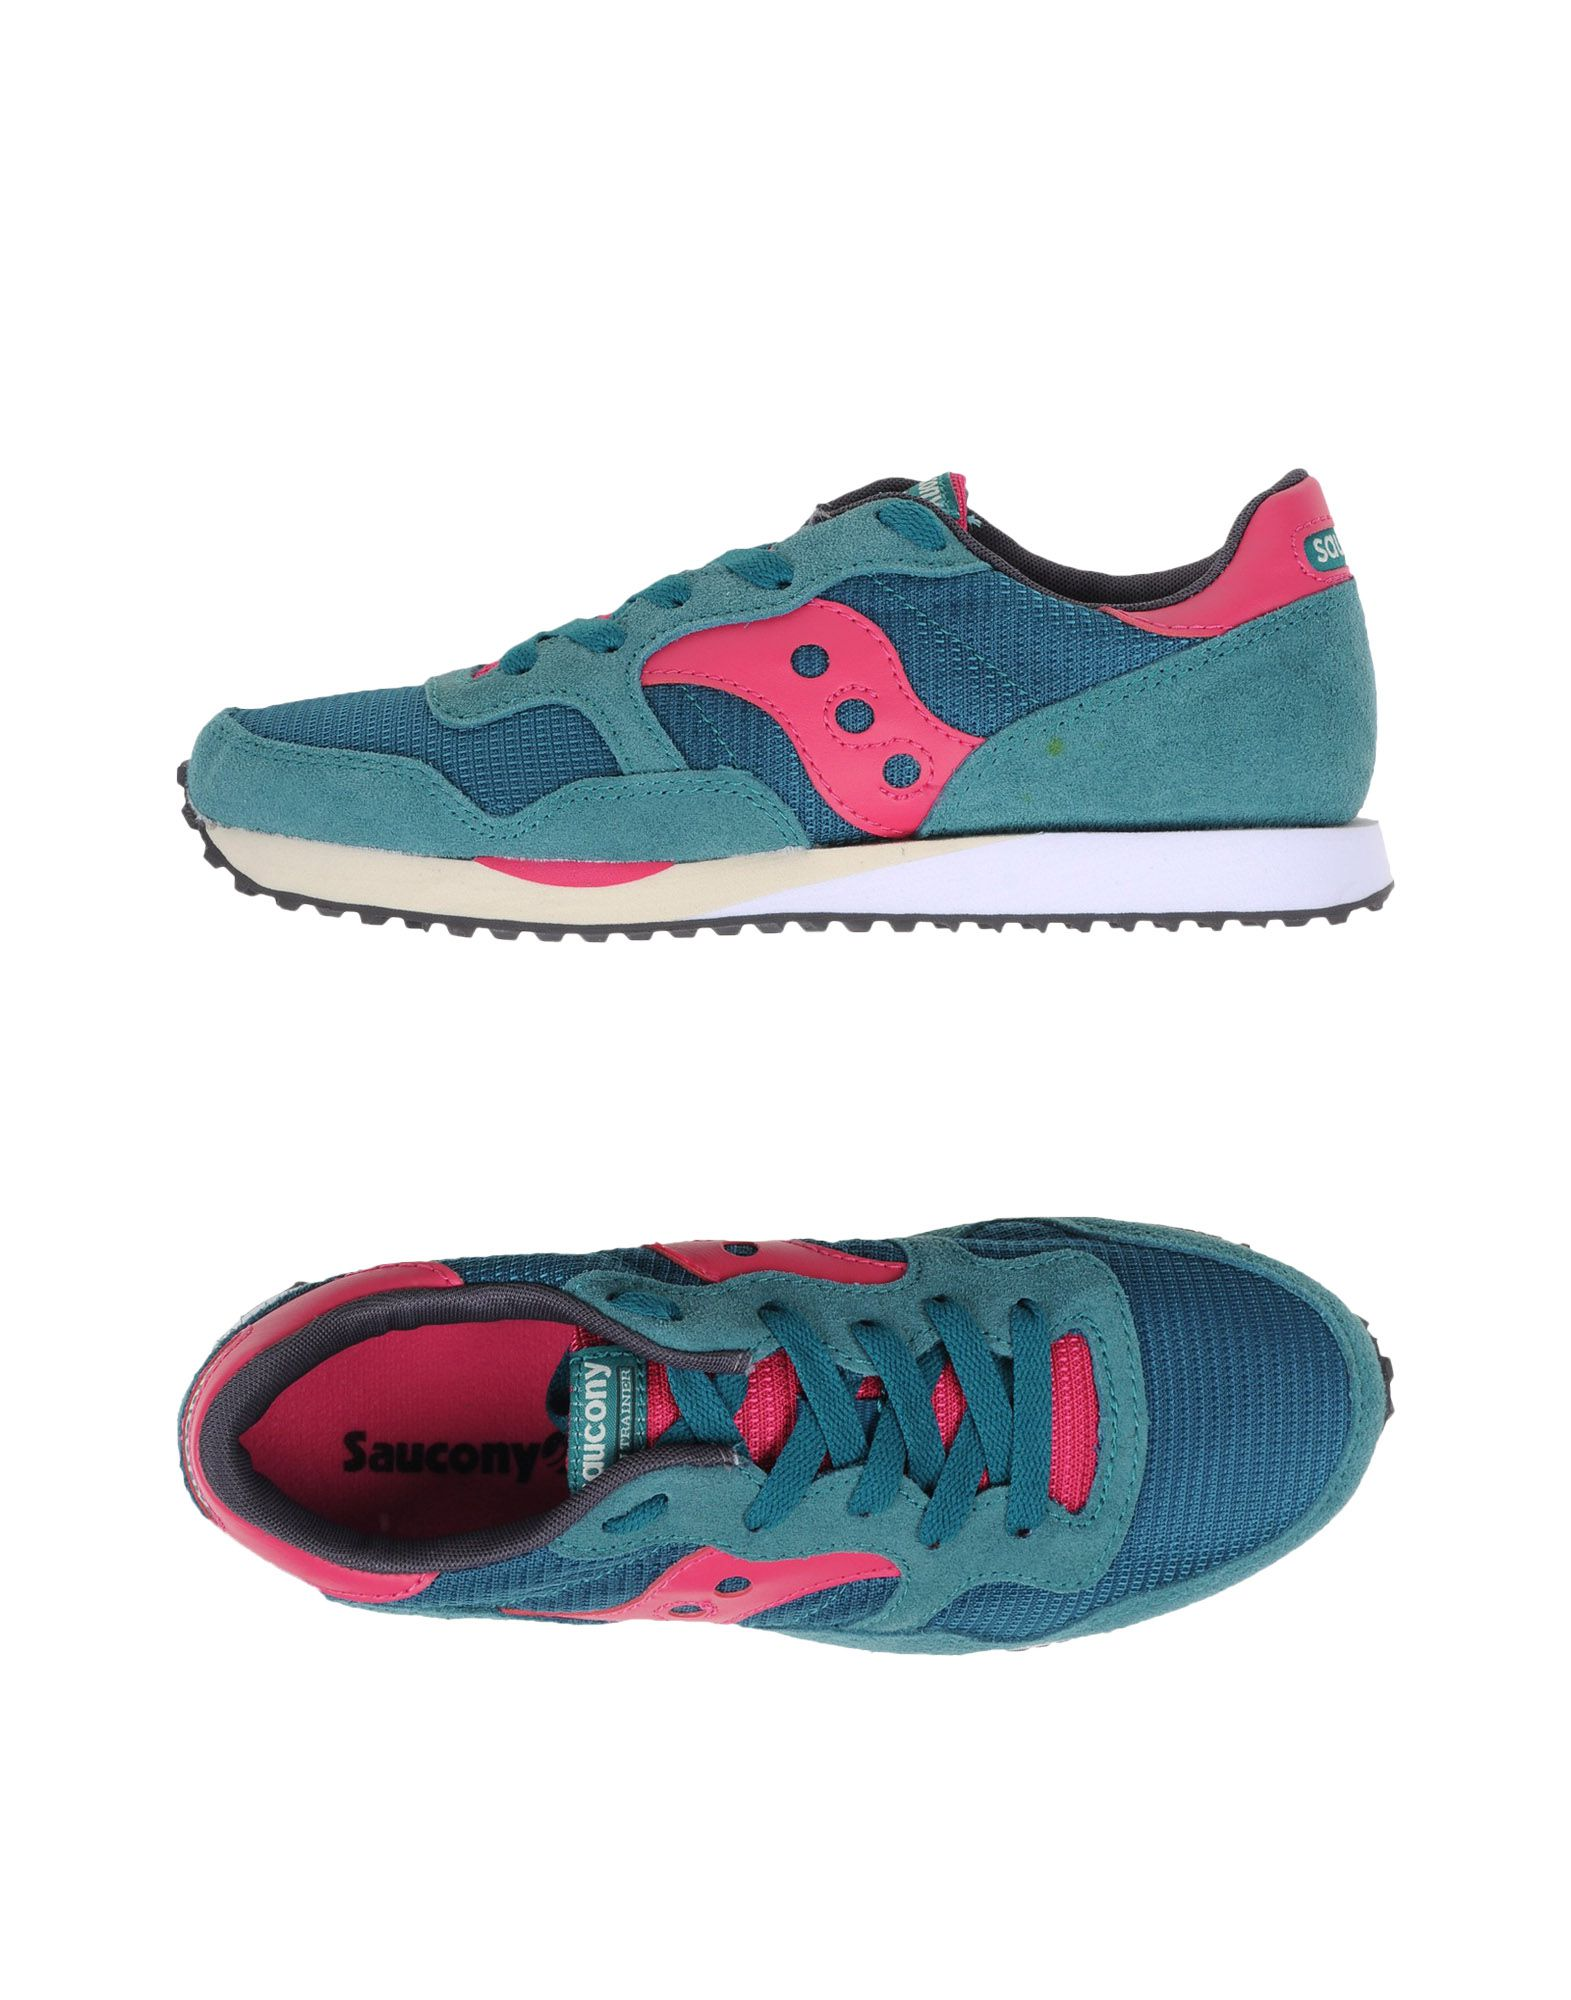 Sneakers Saucony Dxn Trainer W - Donna - Acquista online su